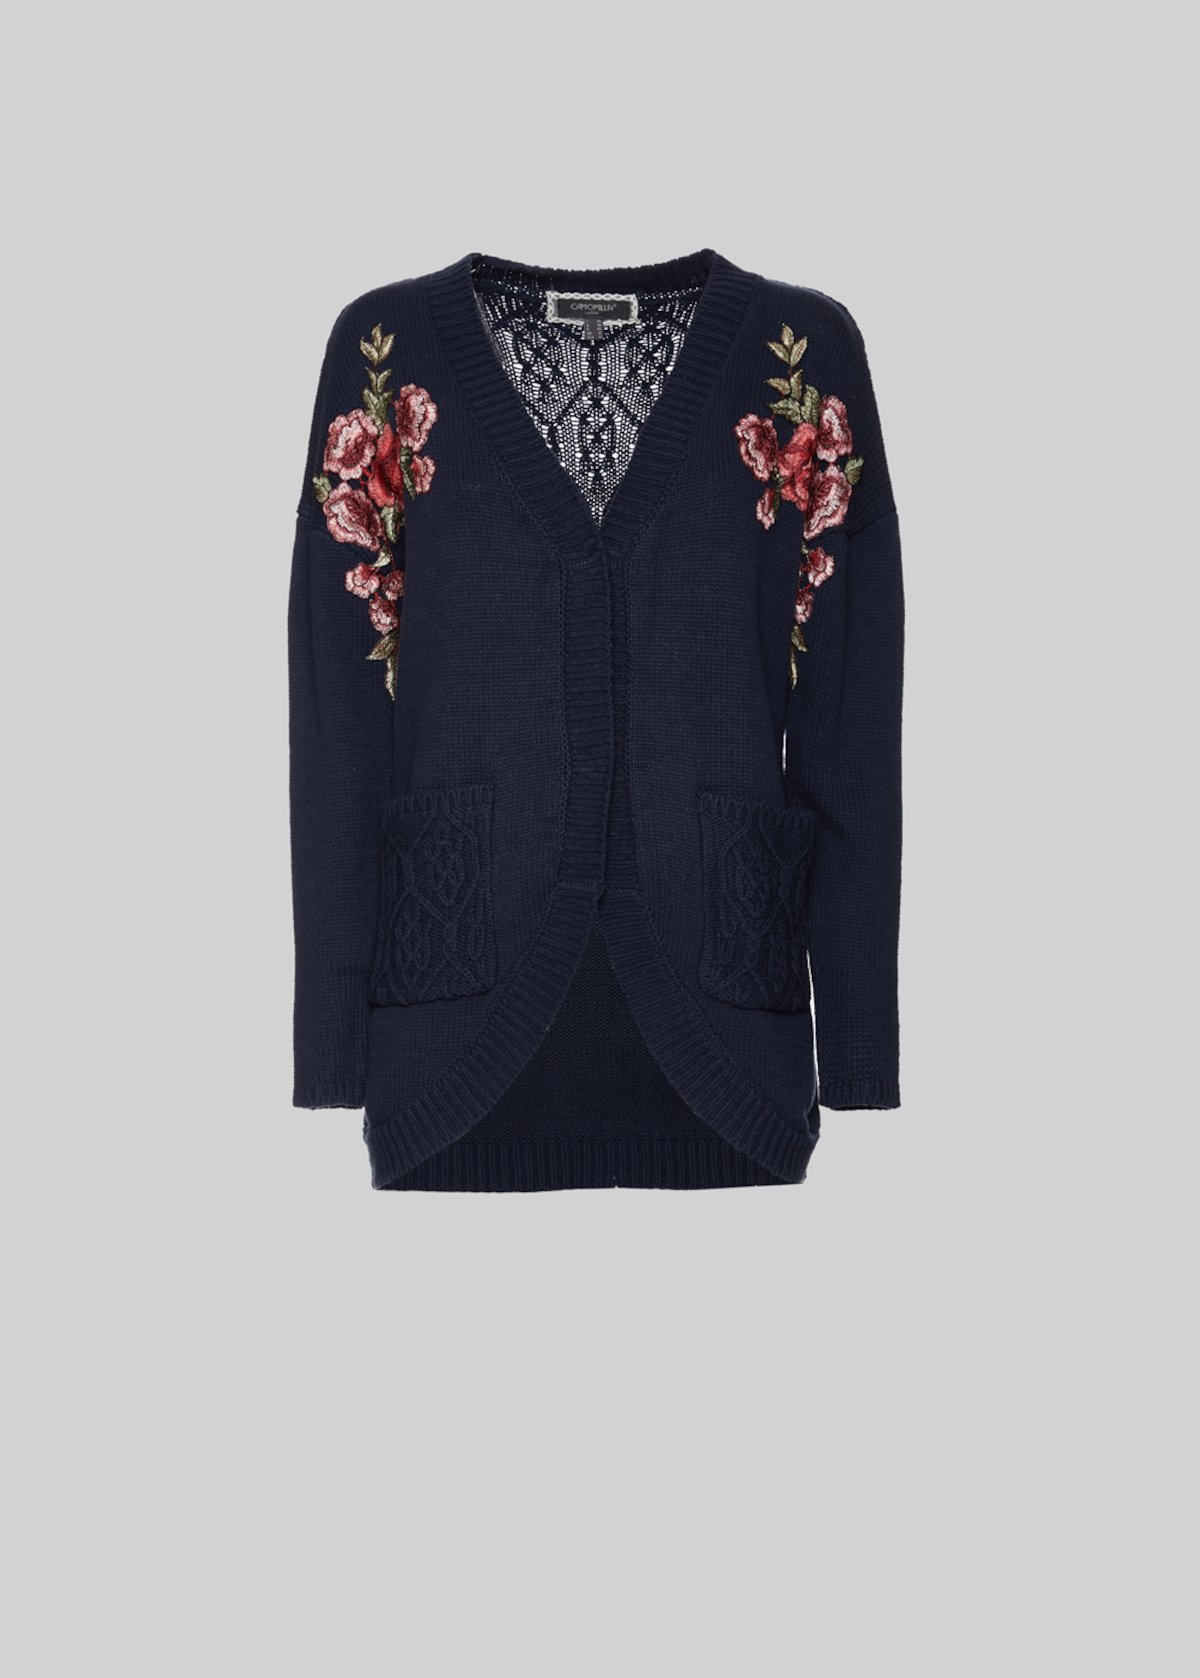 Conrado Cardigan with pockets and flowers patch detail - Dark Blue - Woman - Category image